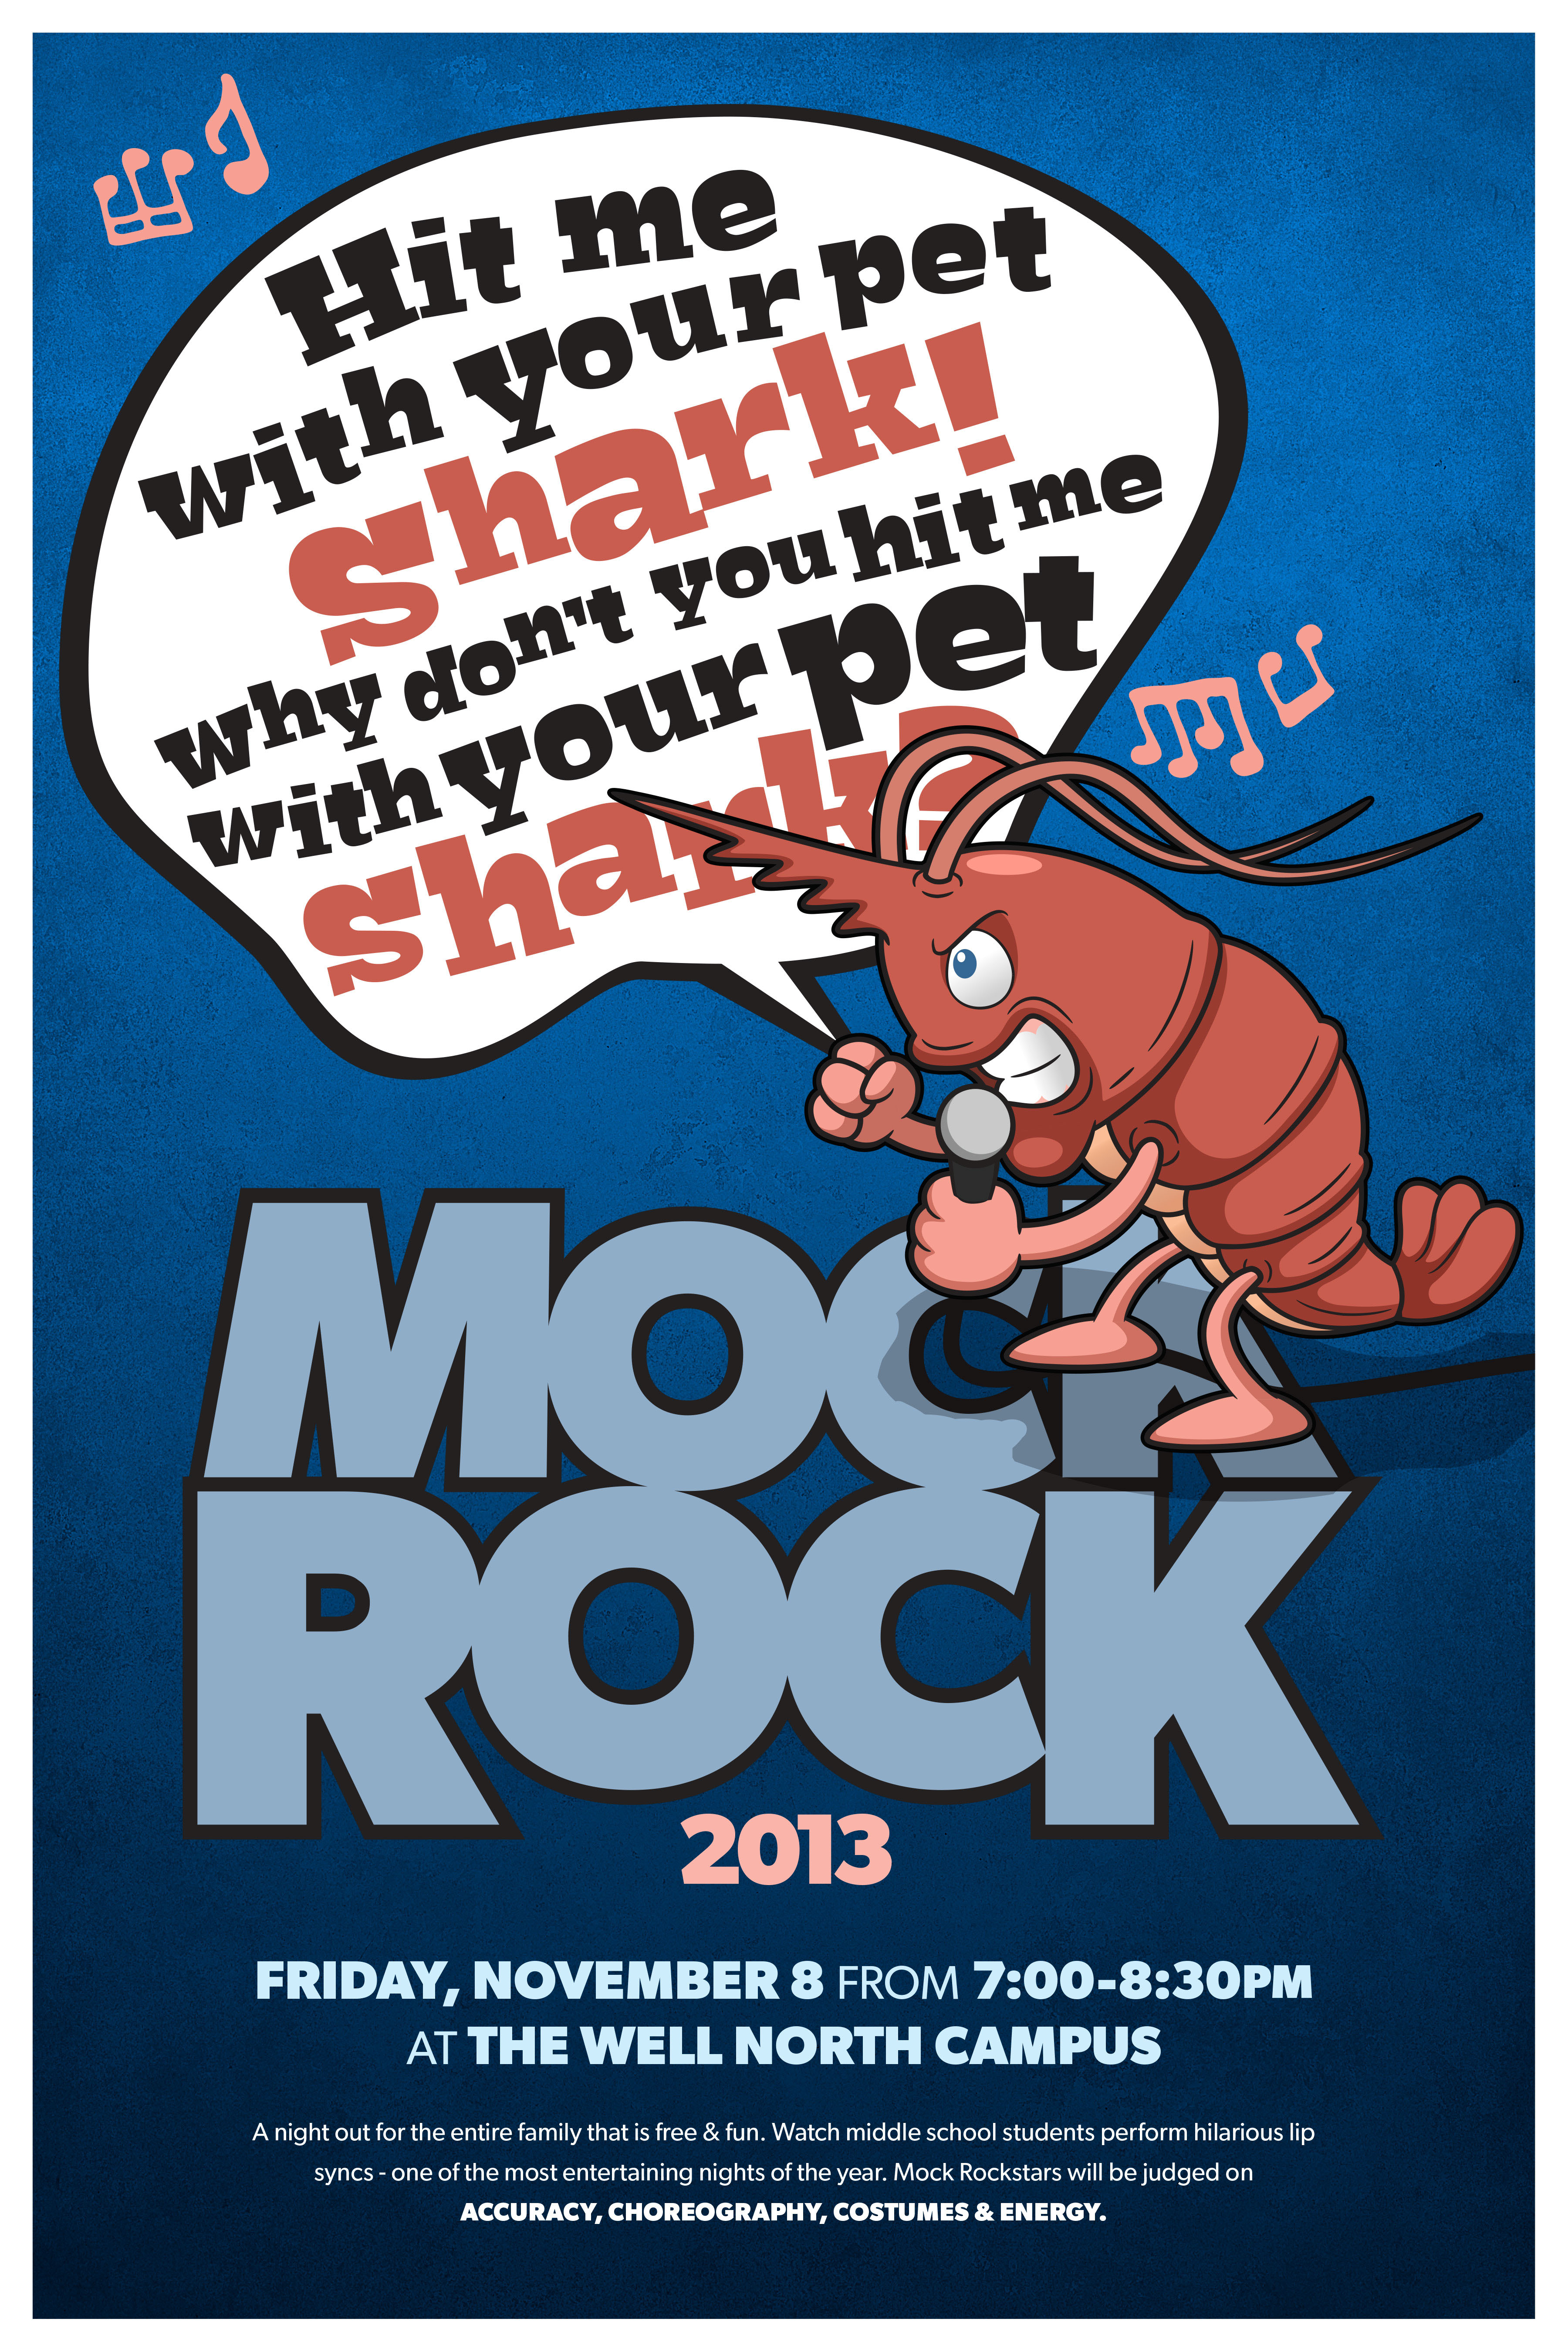 Mock Rock Is An Annual Competition With Singing And Dancing For The Wells Middle School Group This Years Posters Play Off Of Misheard Lyrics